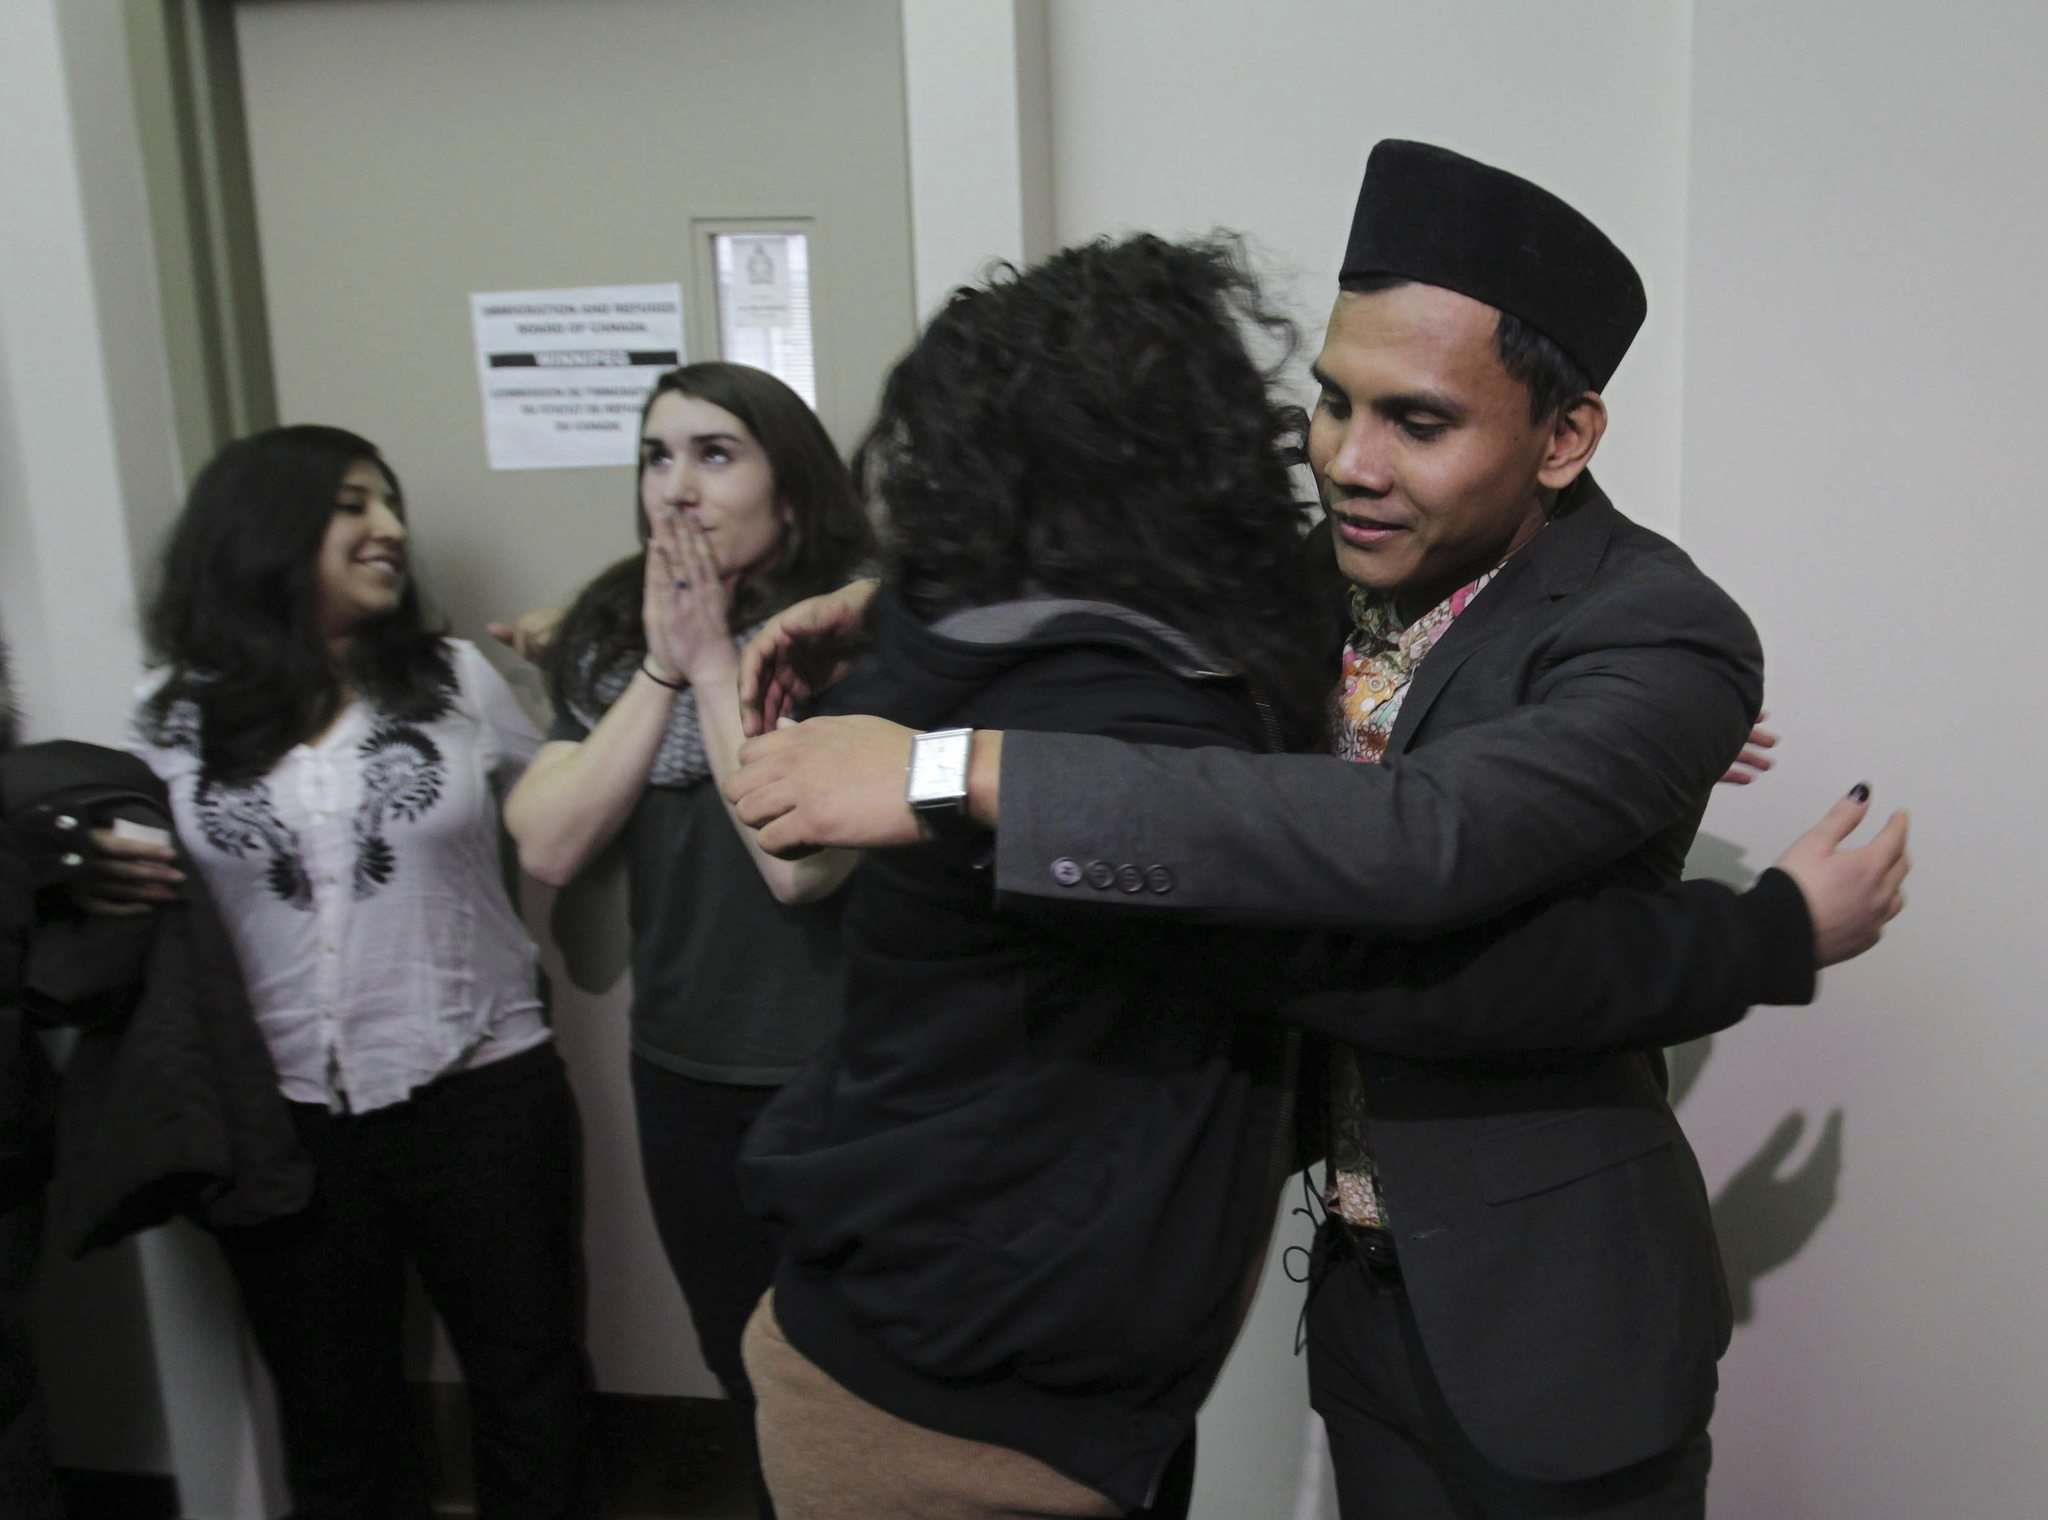 Malaysian student Hazim Ismail (right) gets a hug from Alexa Potashnik outside the refugee hearing office in Winnipeg Tuesday morning after winning his case against being deported back to Malaysia, where he had been given death threats due to his sexual orientation. </p>